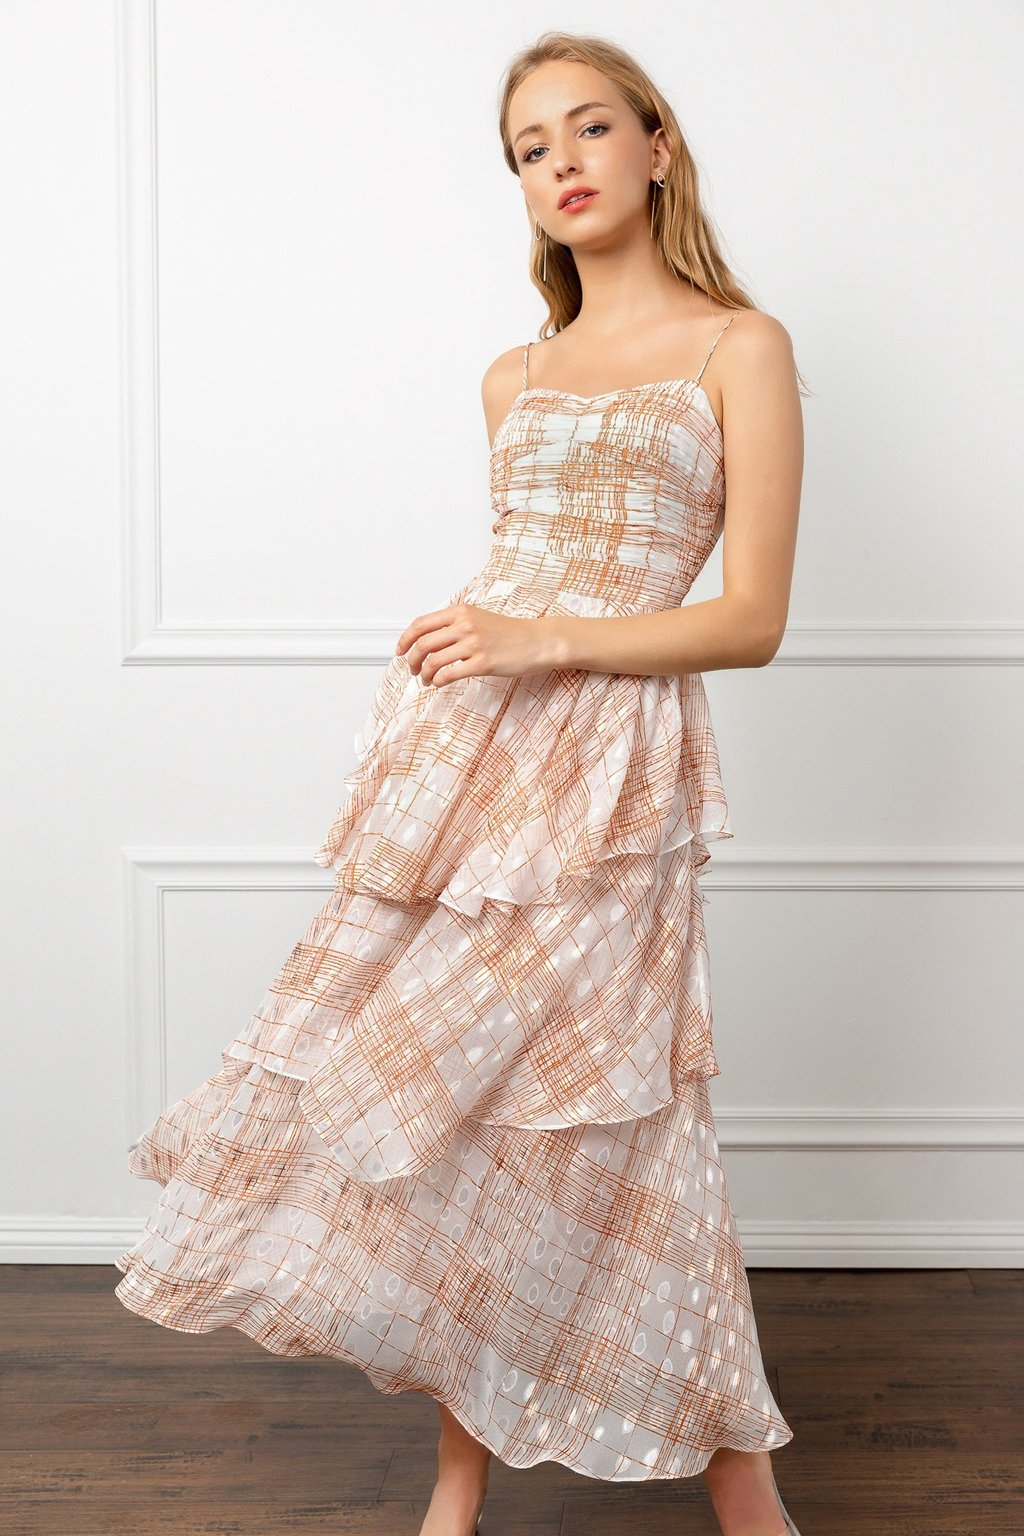 coral peach colored chiffon dress by J.IING